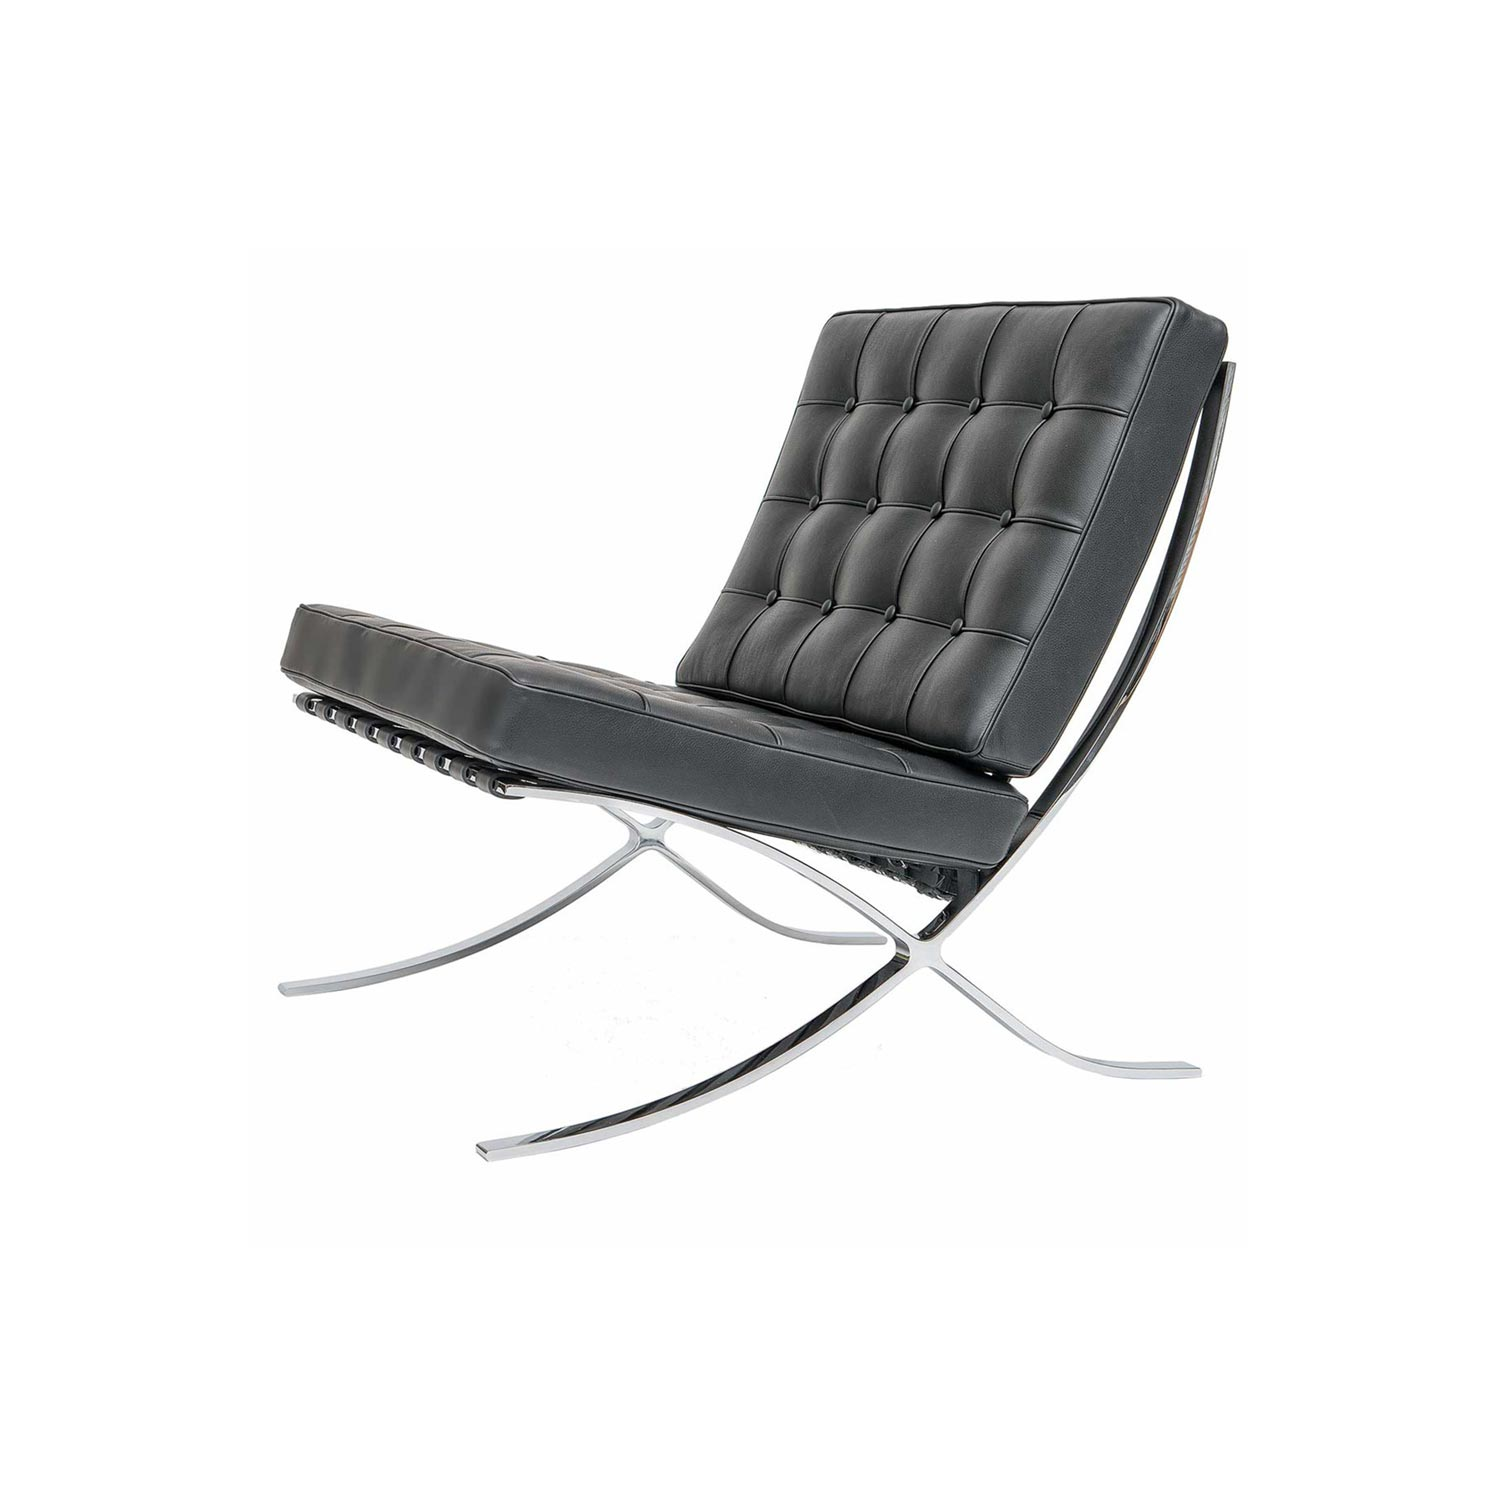 van der rohe furniture.  Furniture Mies Van Der Rohe Barcelona Style Chair Intended Van Der Furniture C